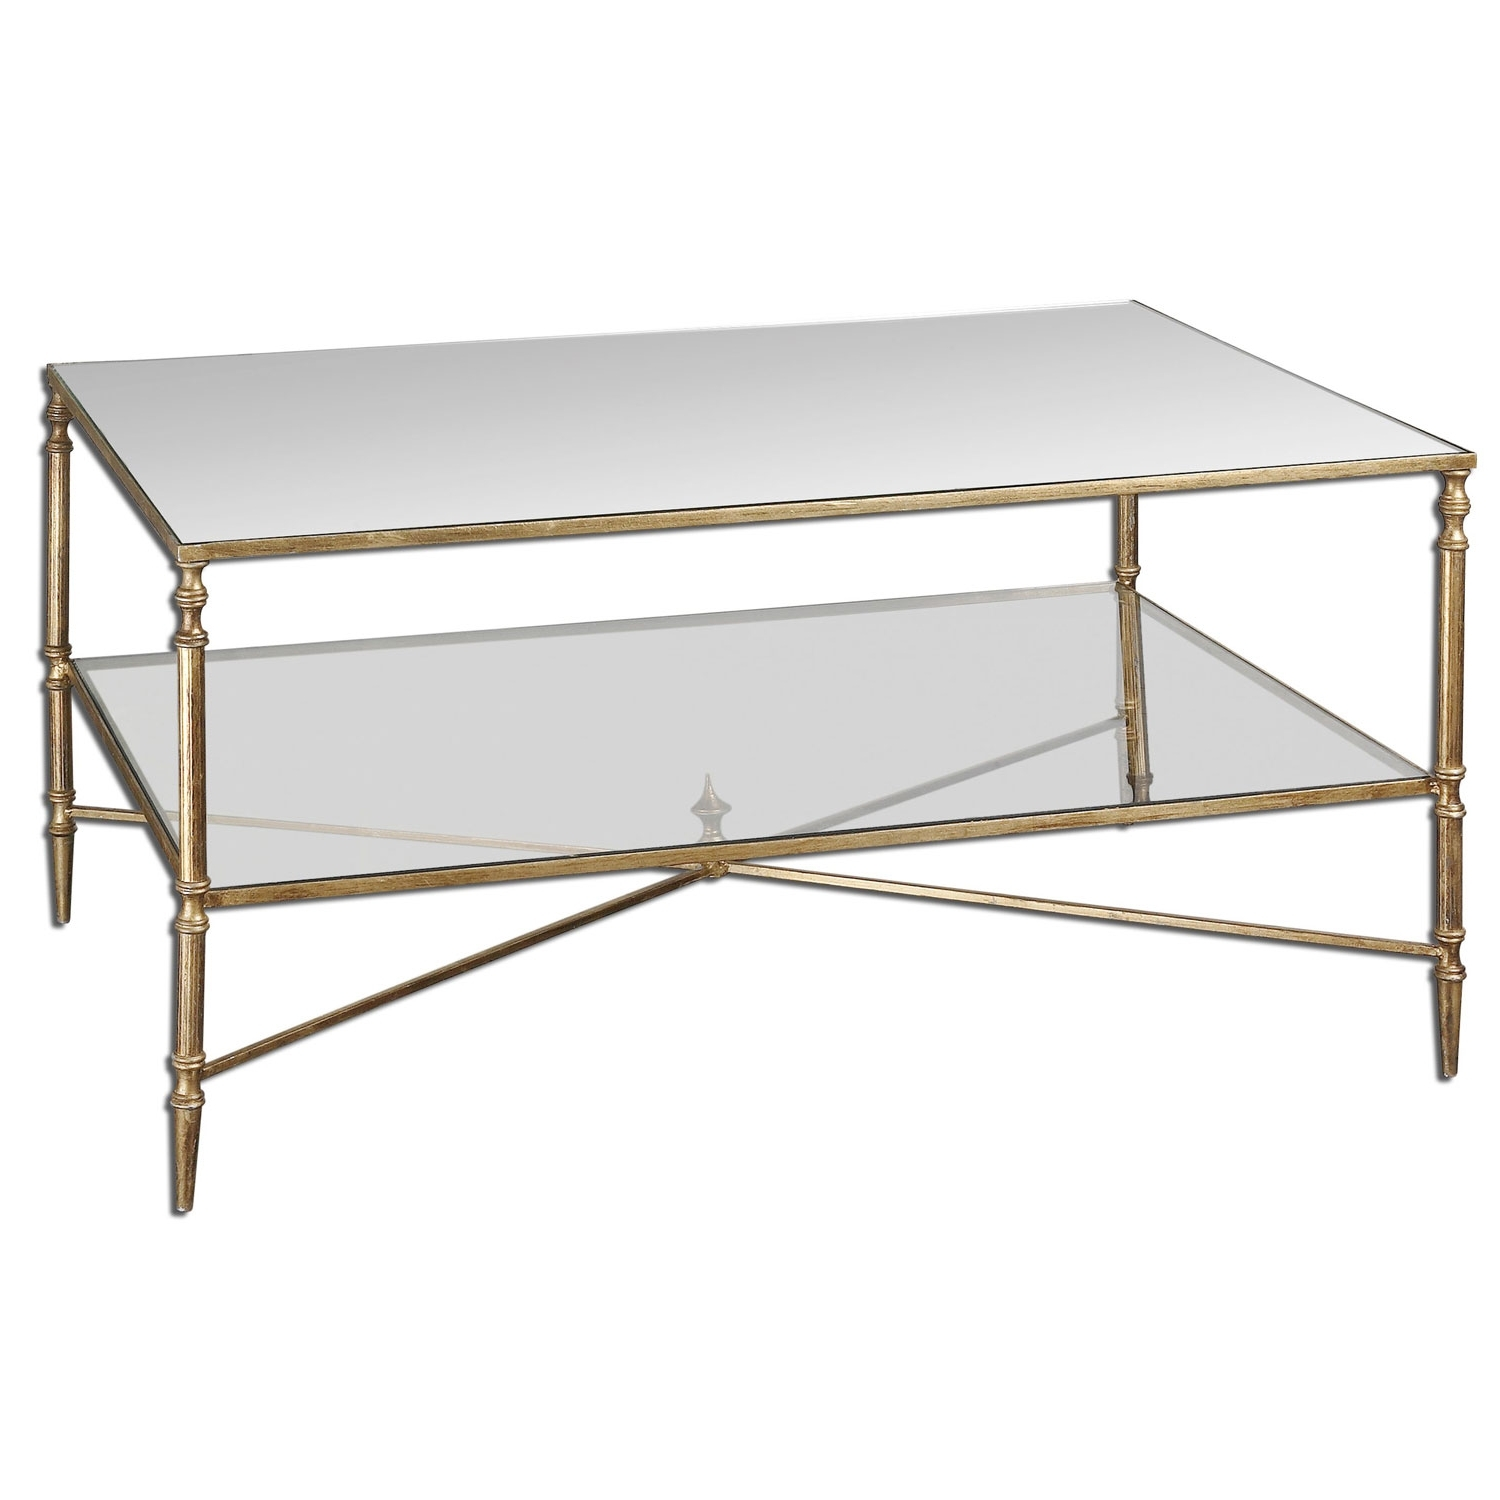 Best And Newest Rectangular Coffee Tables With Brass Legs For Uttermost Gold Henzler Coffee Table  (View 2 of 20)